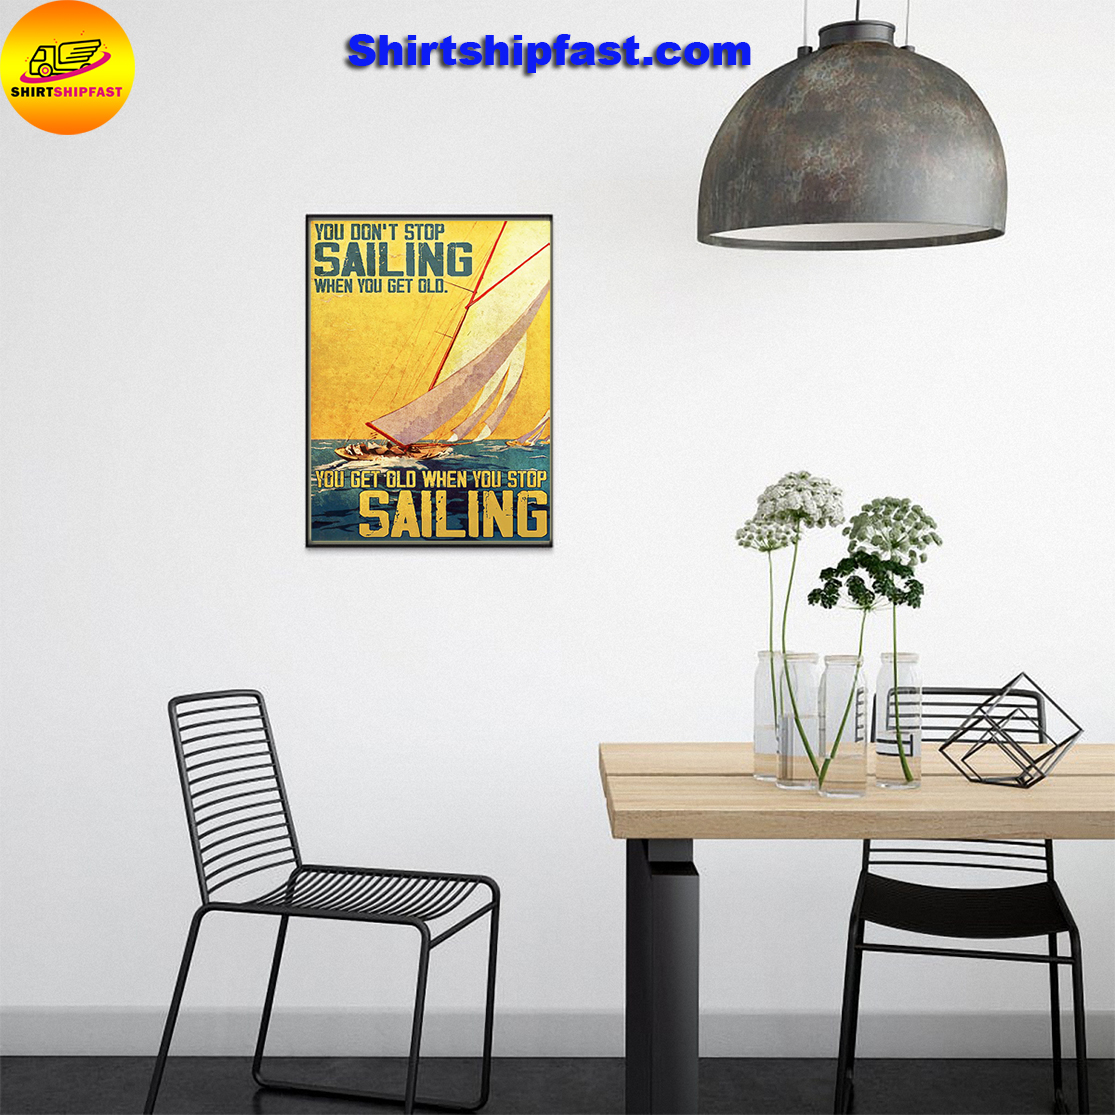 You don't stop sailing when you get old poster - Picture 3